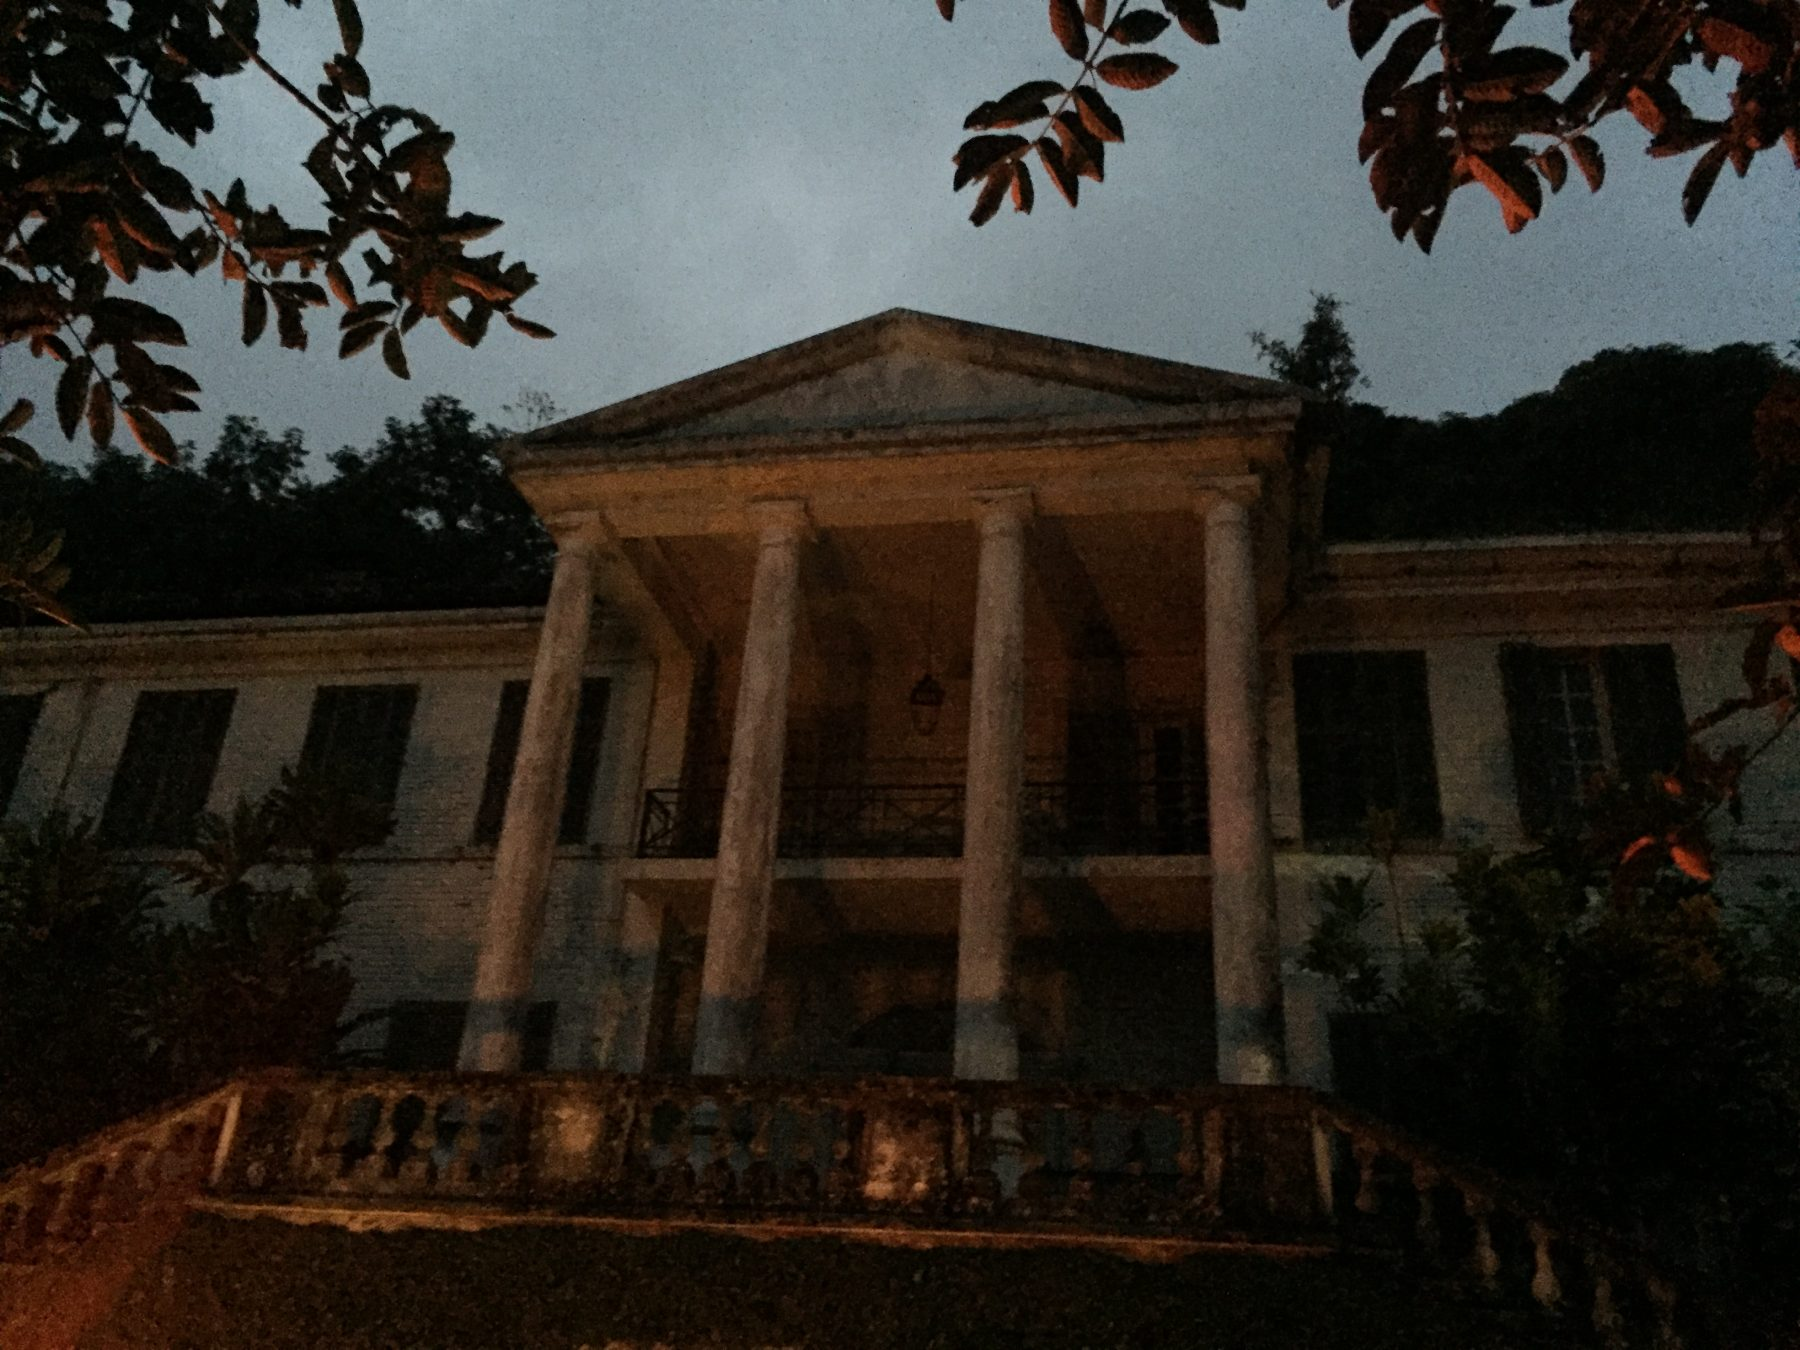 The Haunted Guirola Mansion of El Salvador